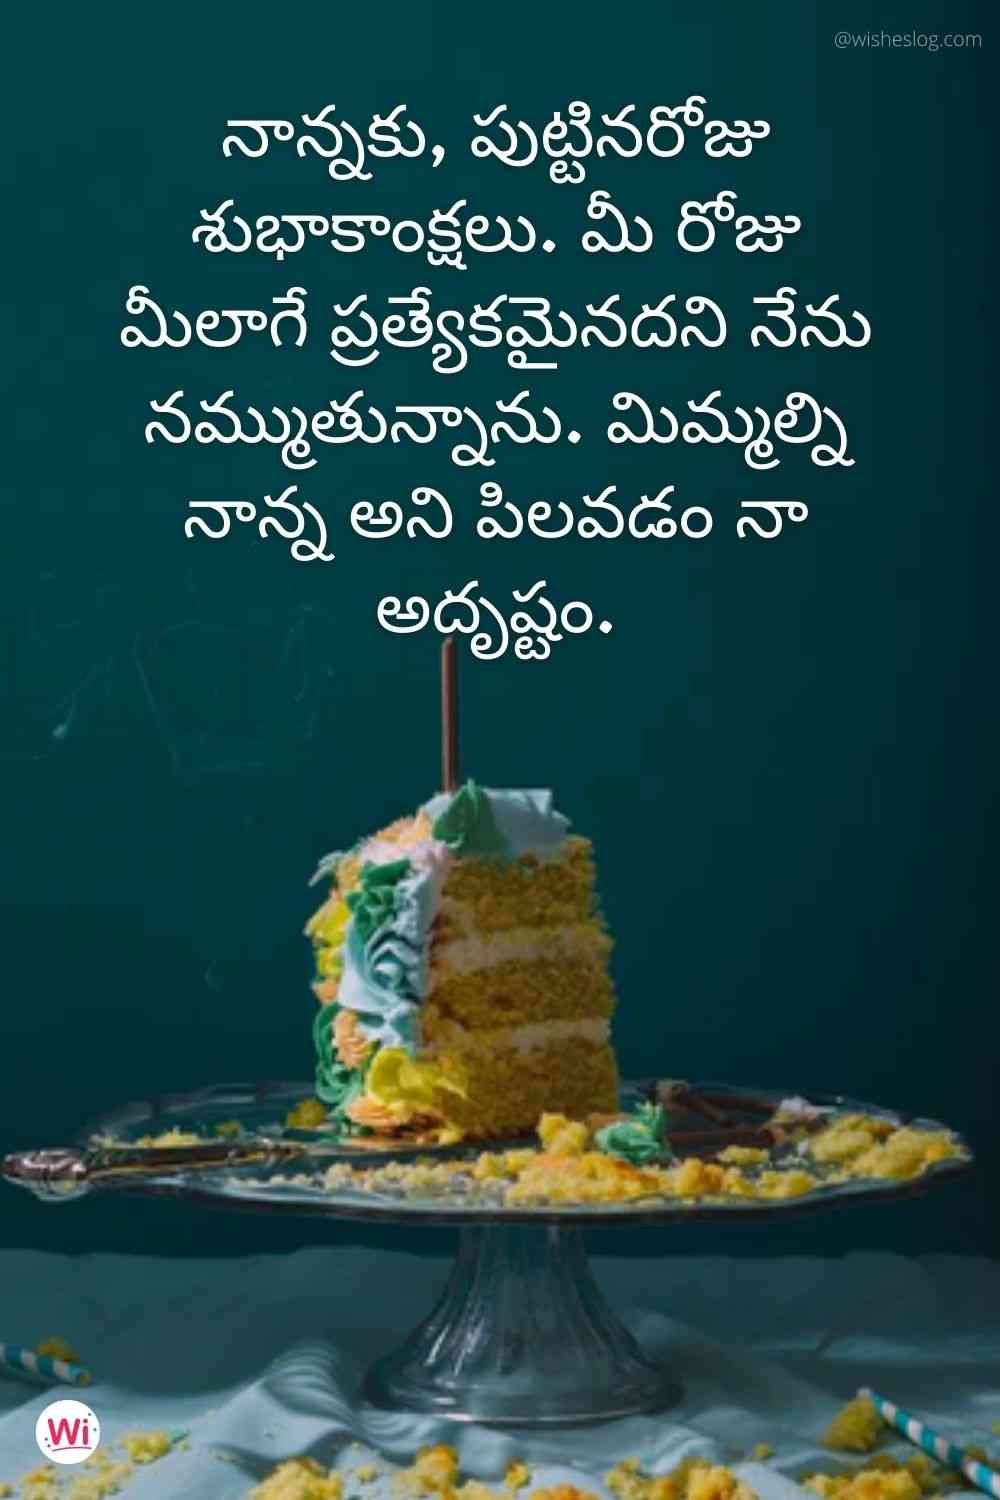 happy birthday images in telugu for papa